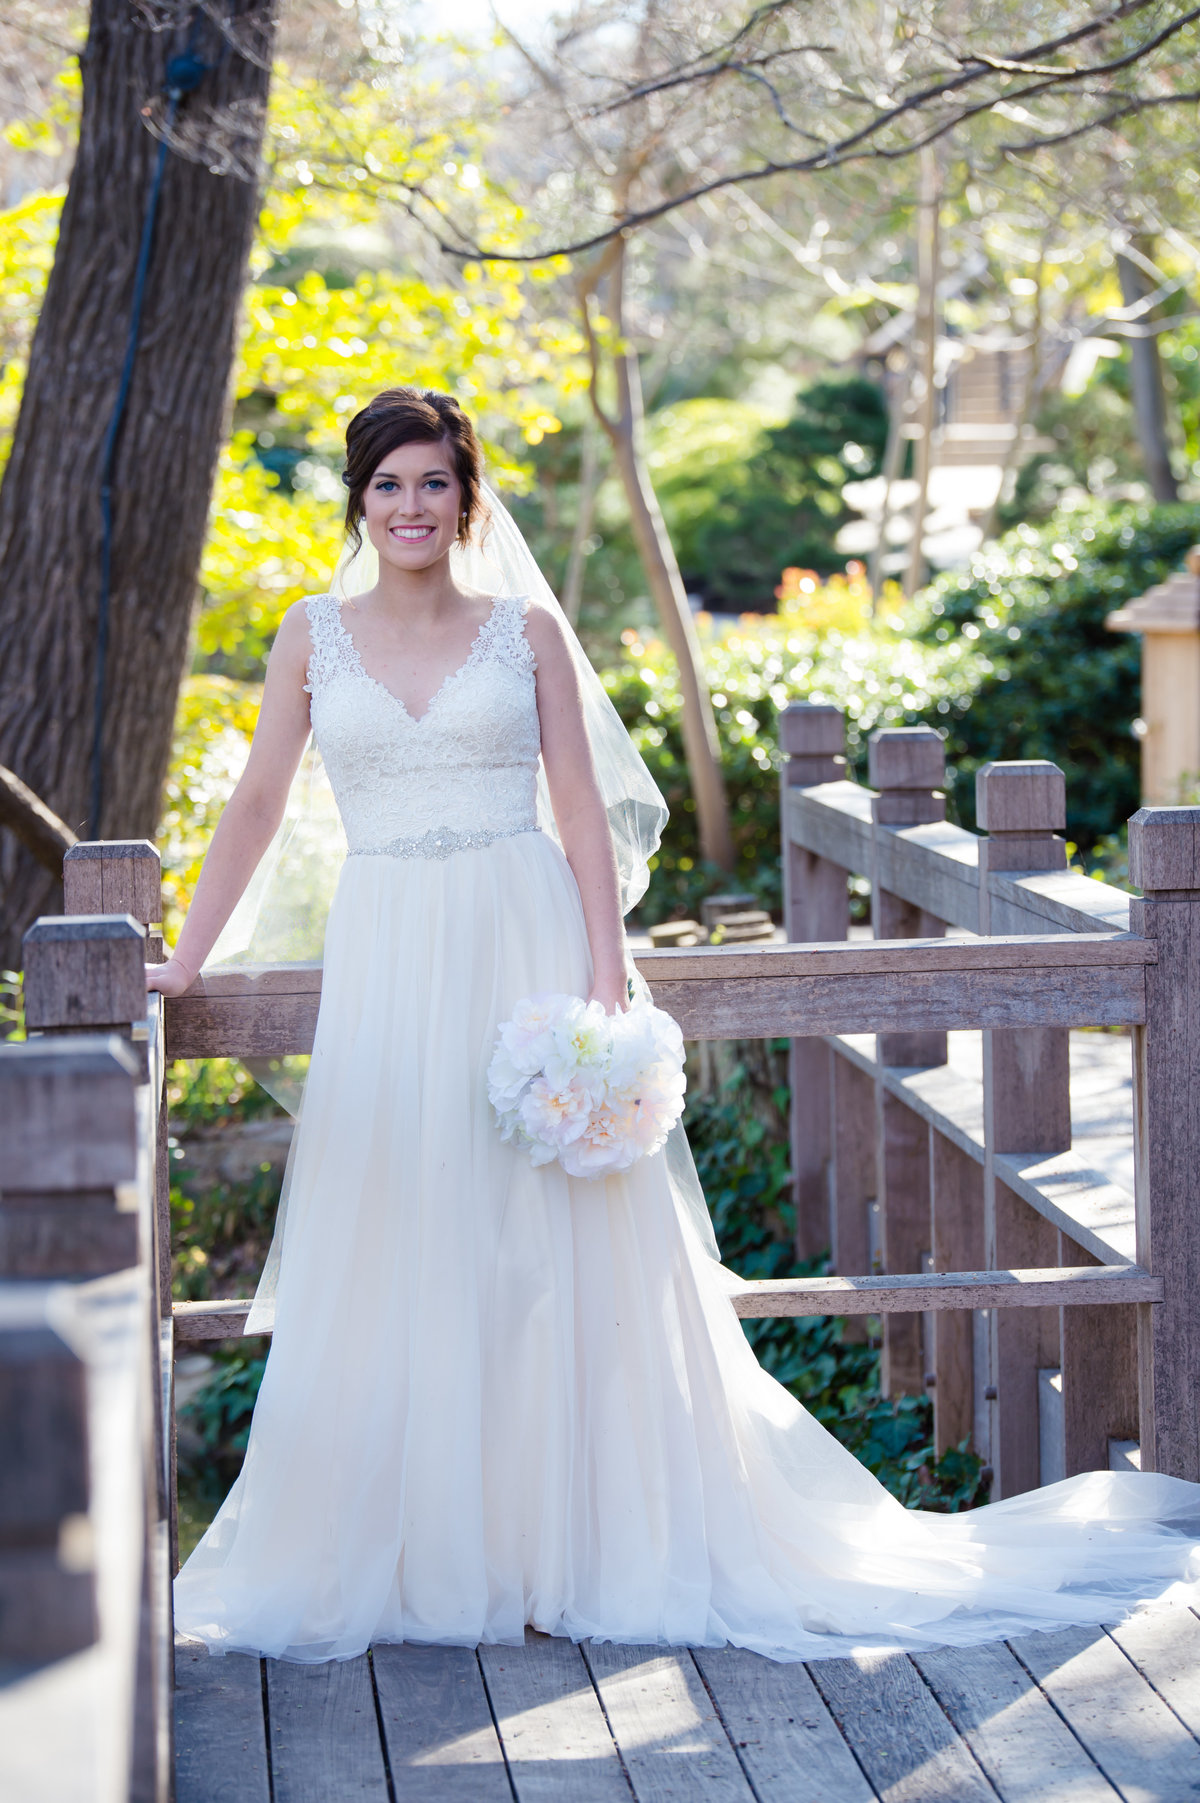 Japanese Gardens Fort Worth Bridal photos by Brittany Barclay Photography